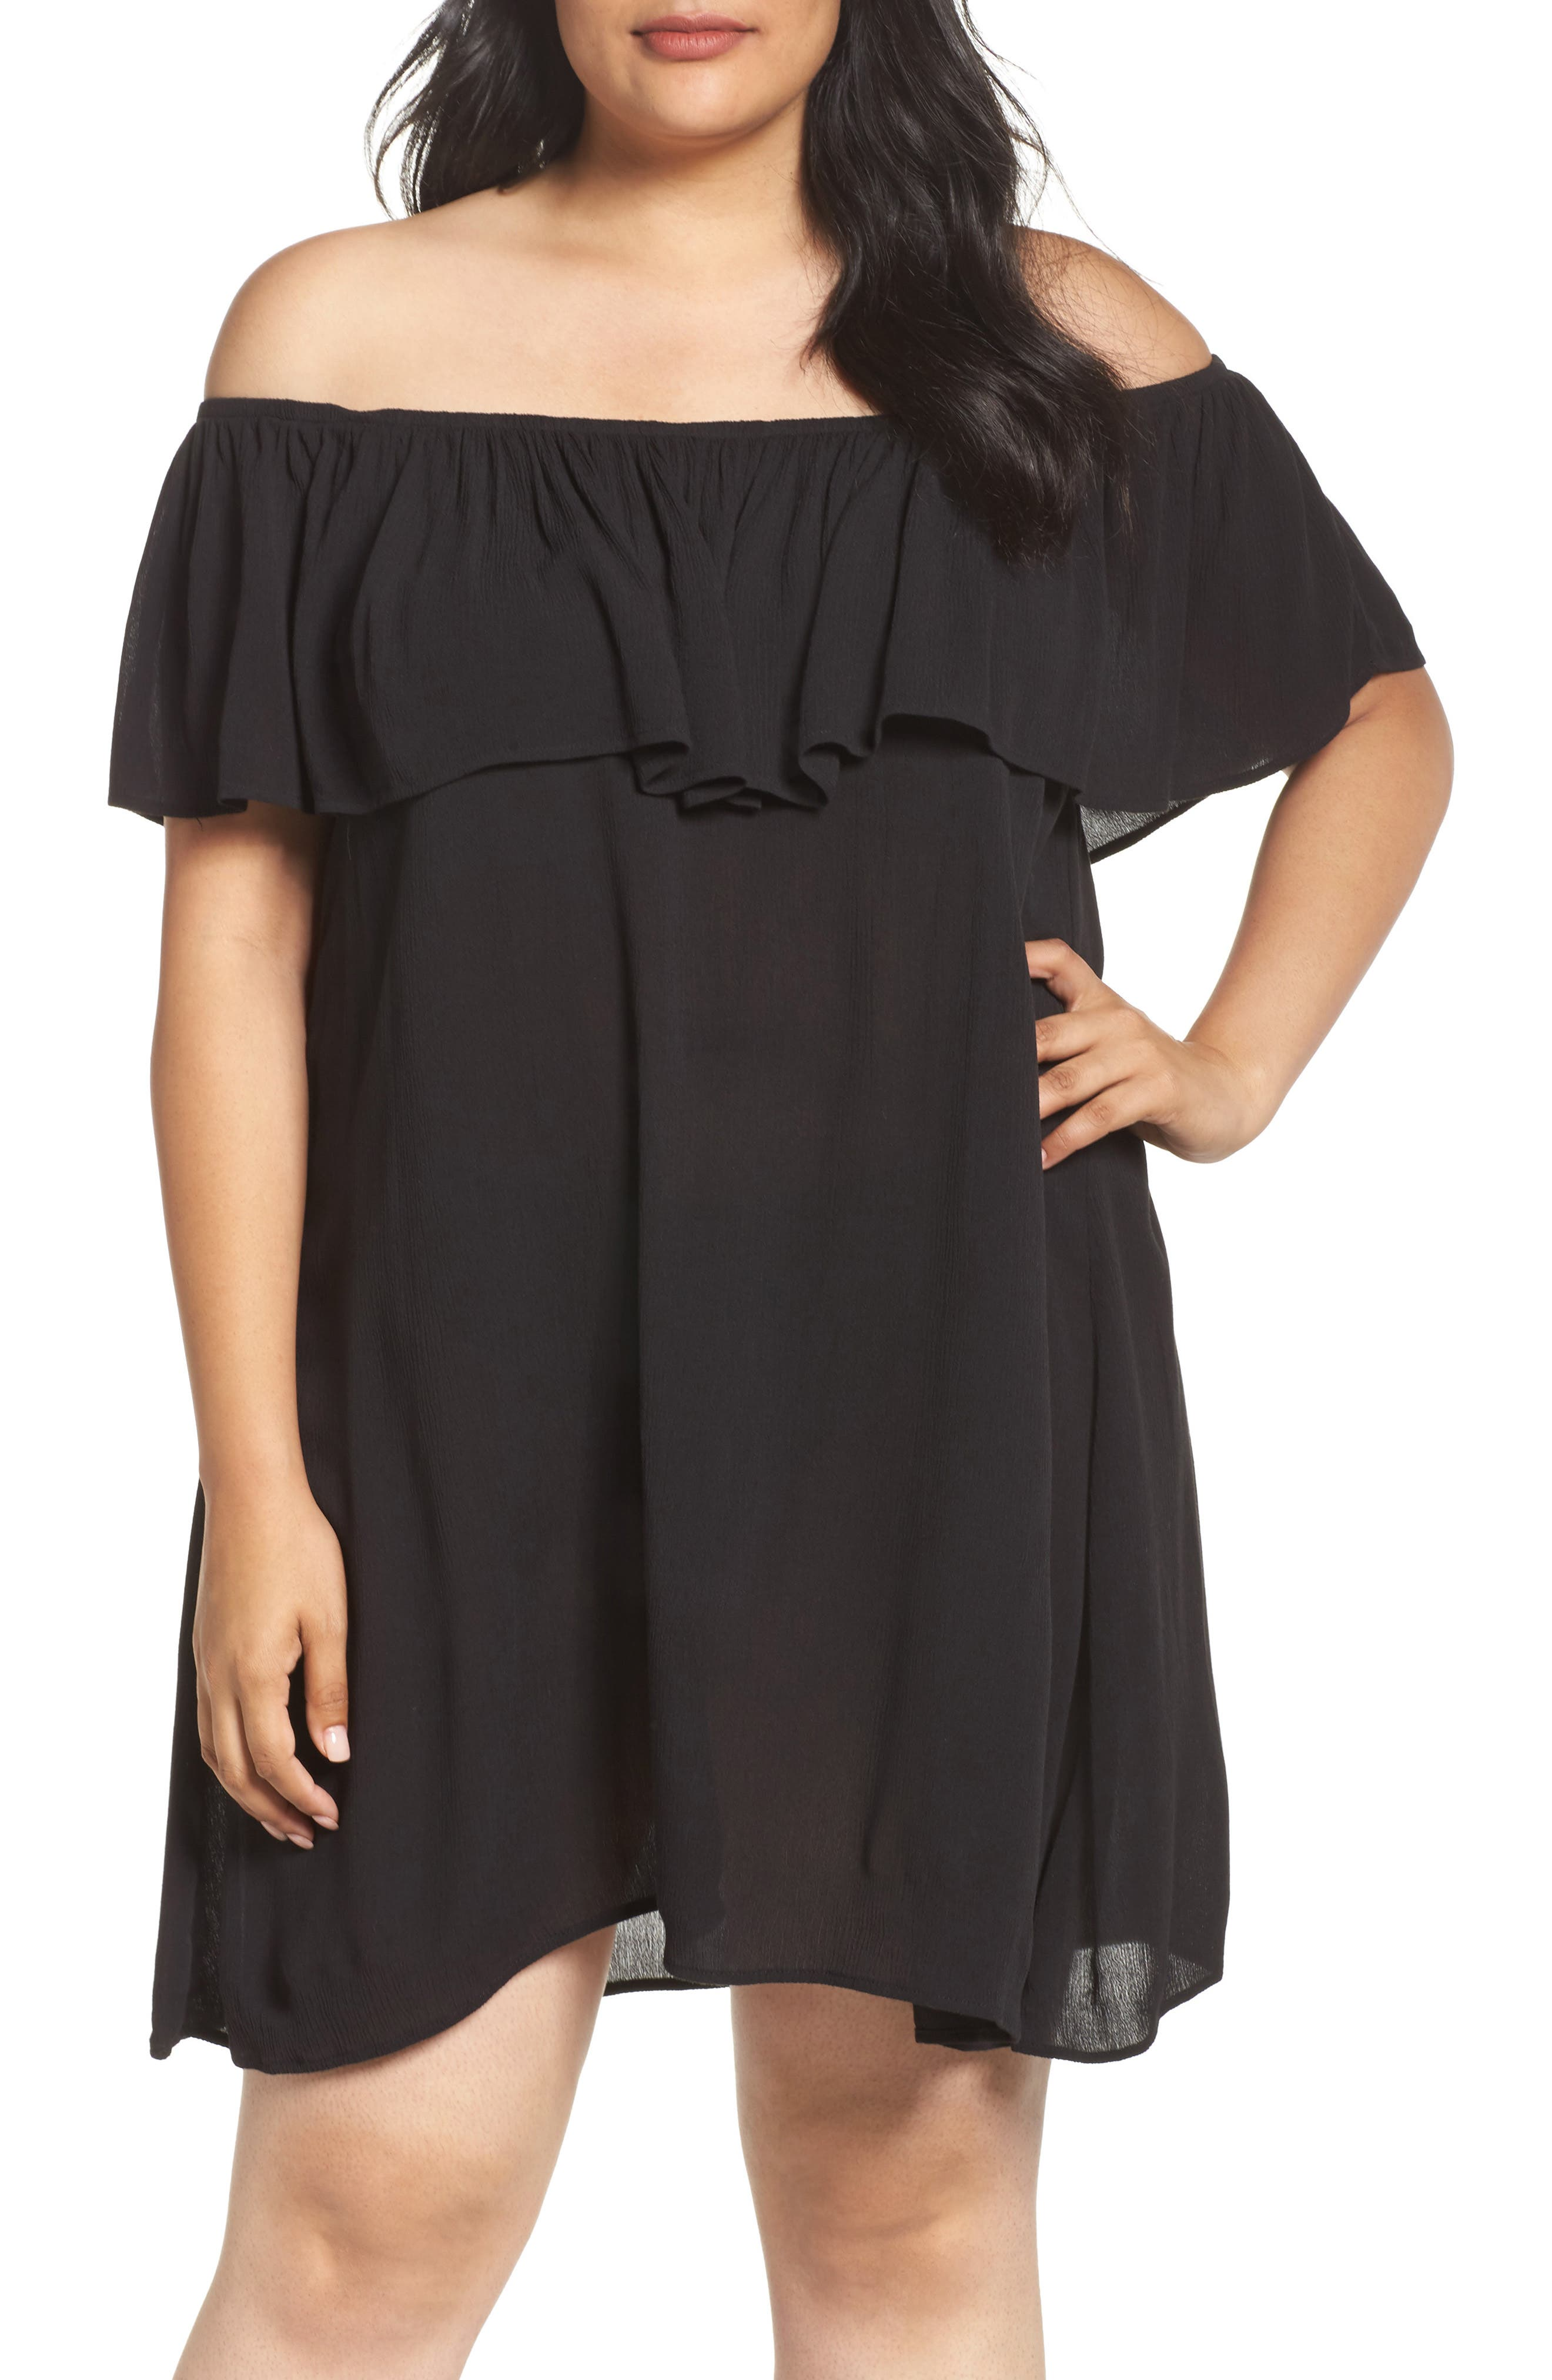 Main Image - Becca Etc. Southern Belle Off the Shoulder Cover-Up Dress (Plus Size)